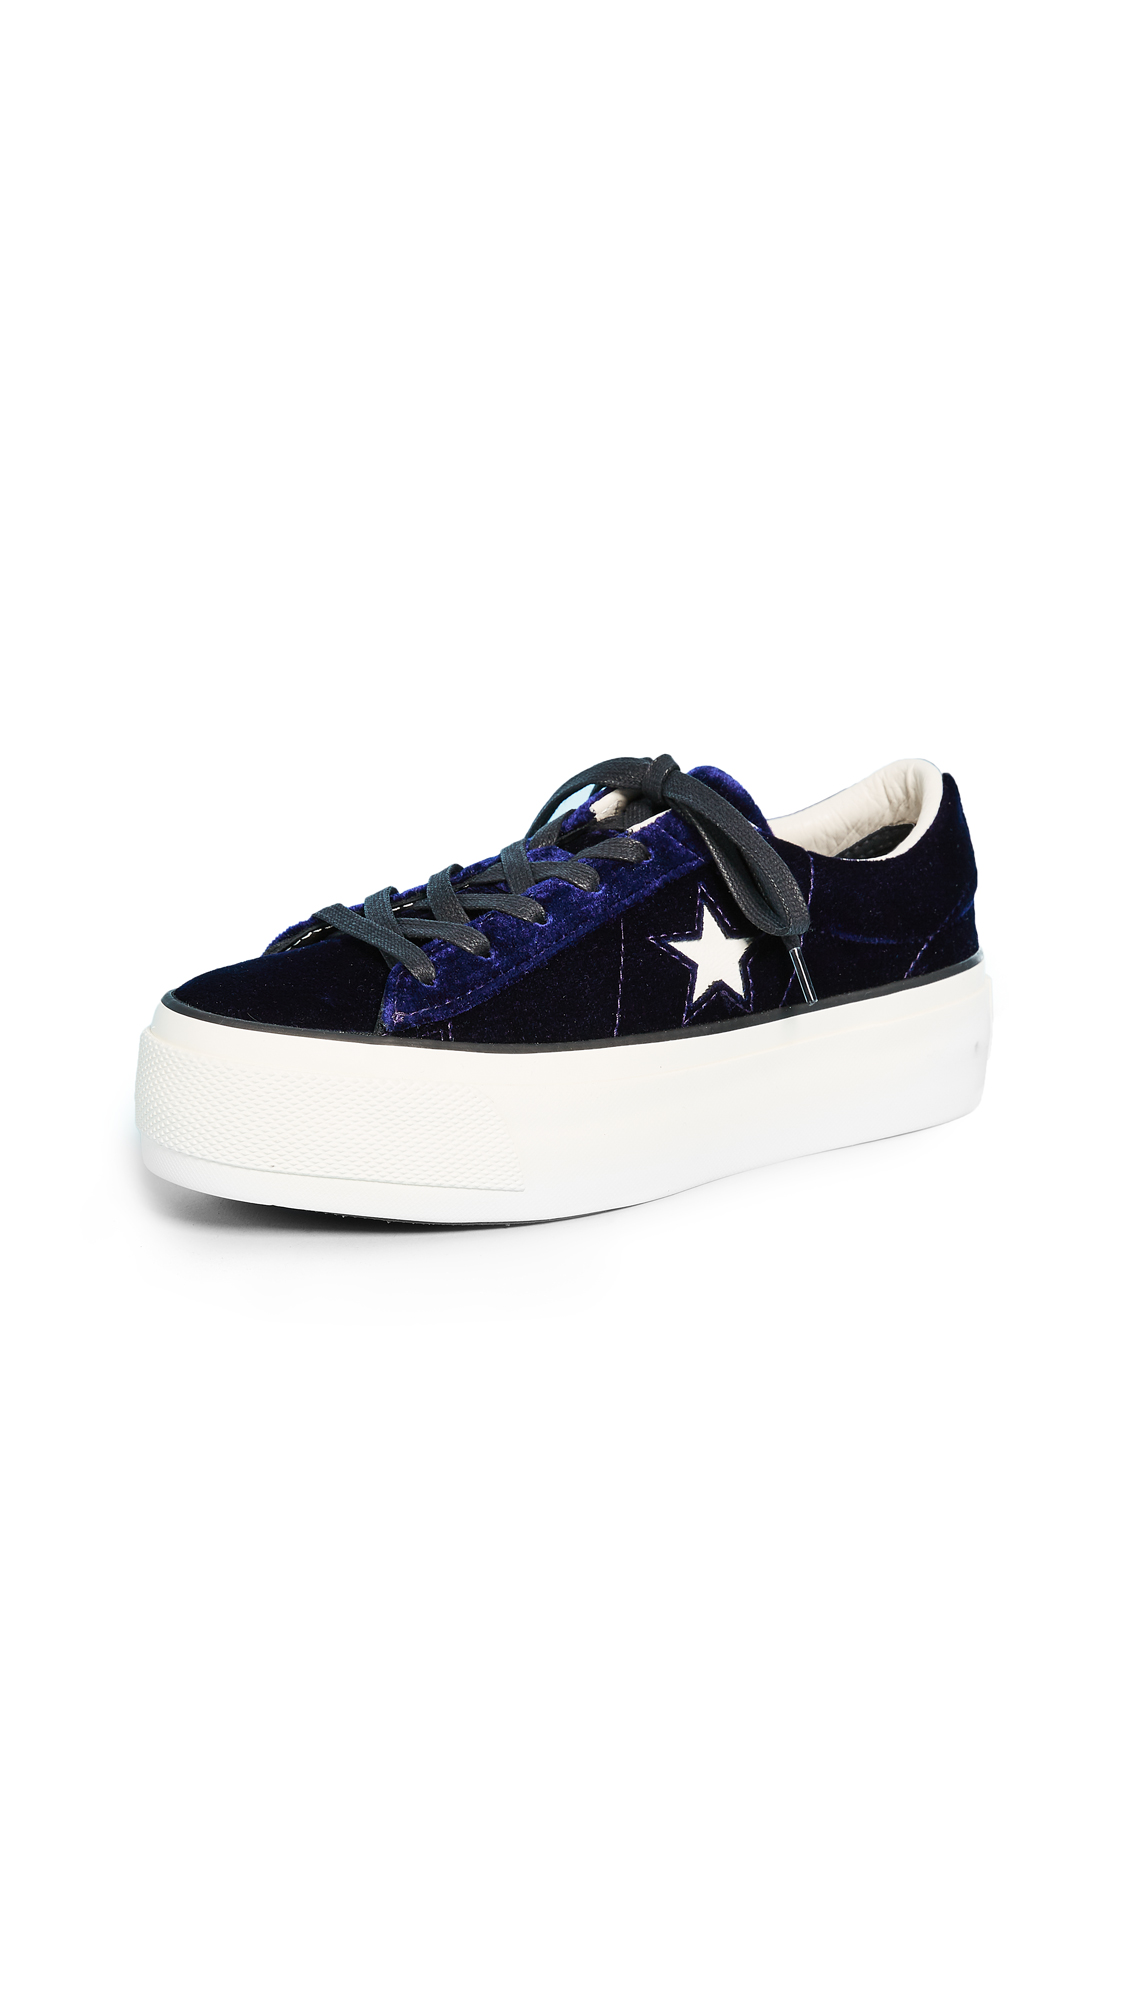 Converse One Star Platform Ox Sneakers - Eclipse Blue/Egret/Black